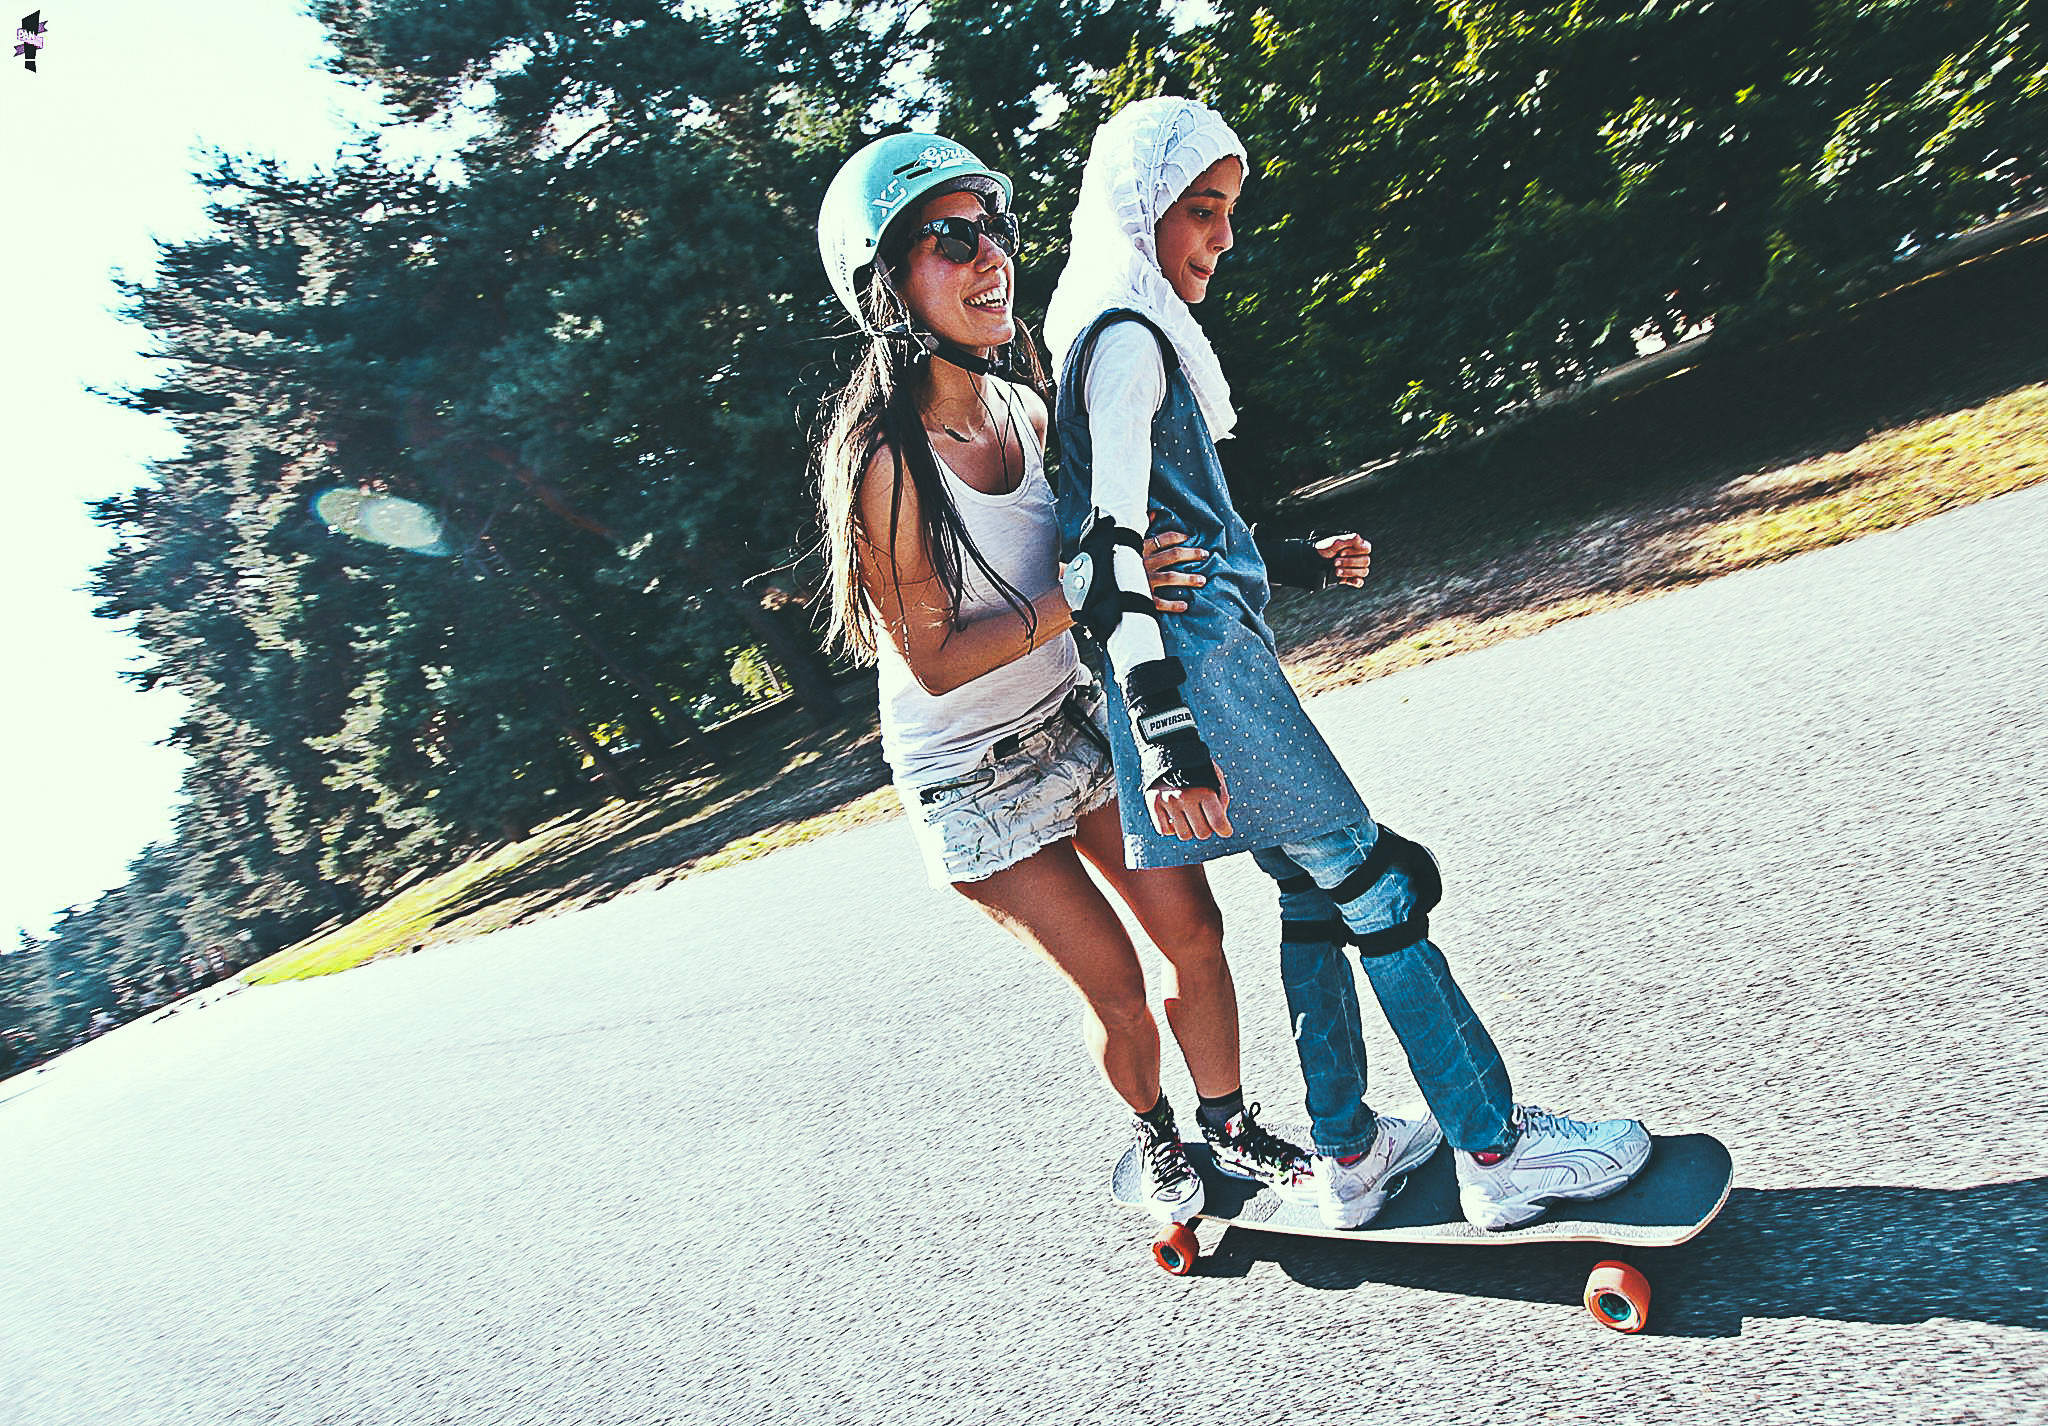 longboard girls crew, longboard, longboarding, skate, skateboarding, cool, rad, strong, awesome, photo, girl, power, sea, summer, amazing photo, nose manual, girls who shred, girls who skate, lgc, friends, fun, skate like a girl, women supporting women, goals, beautiful, action, action sports, sport, women in sport, game changers, ride, female rider, athlete, girl boss, lean in, women unite, equality, balance, gender, gender equality, board, boards, sun, longboard girl, longboard girls, boards, valeria kechichian, together1heart, T1H, together 1 heart, shift, NGO, ONG, help, cambodia, camboya, hijab, somali mam, ling ya chea, humanitarian, cause, joy, empathy, ayuda humanitaria, love